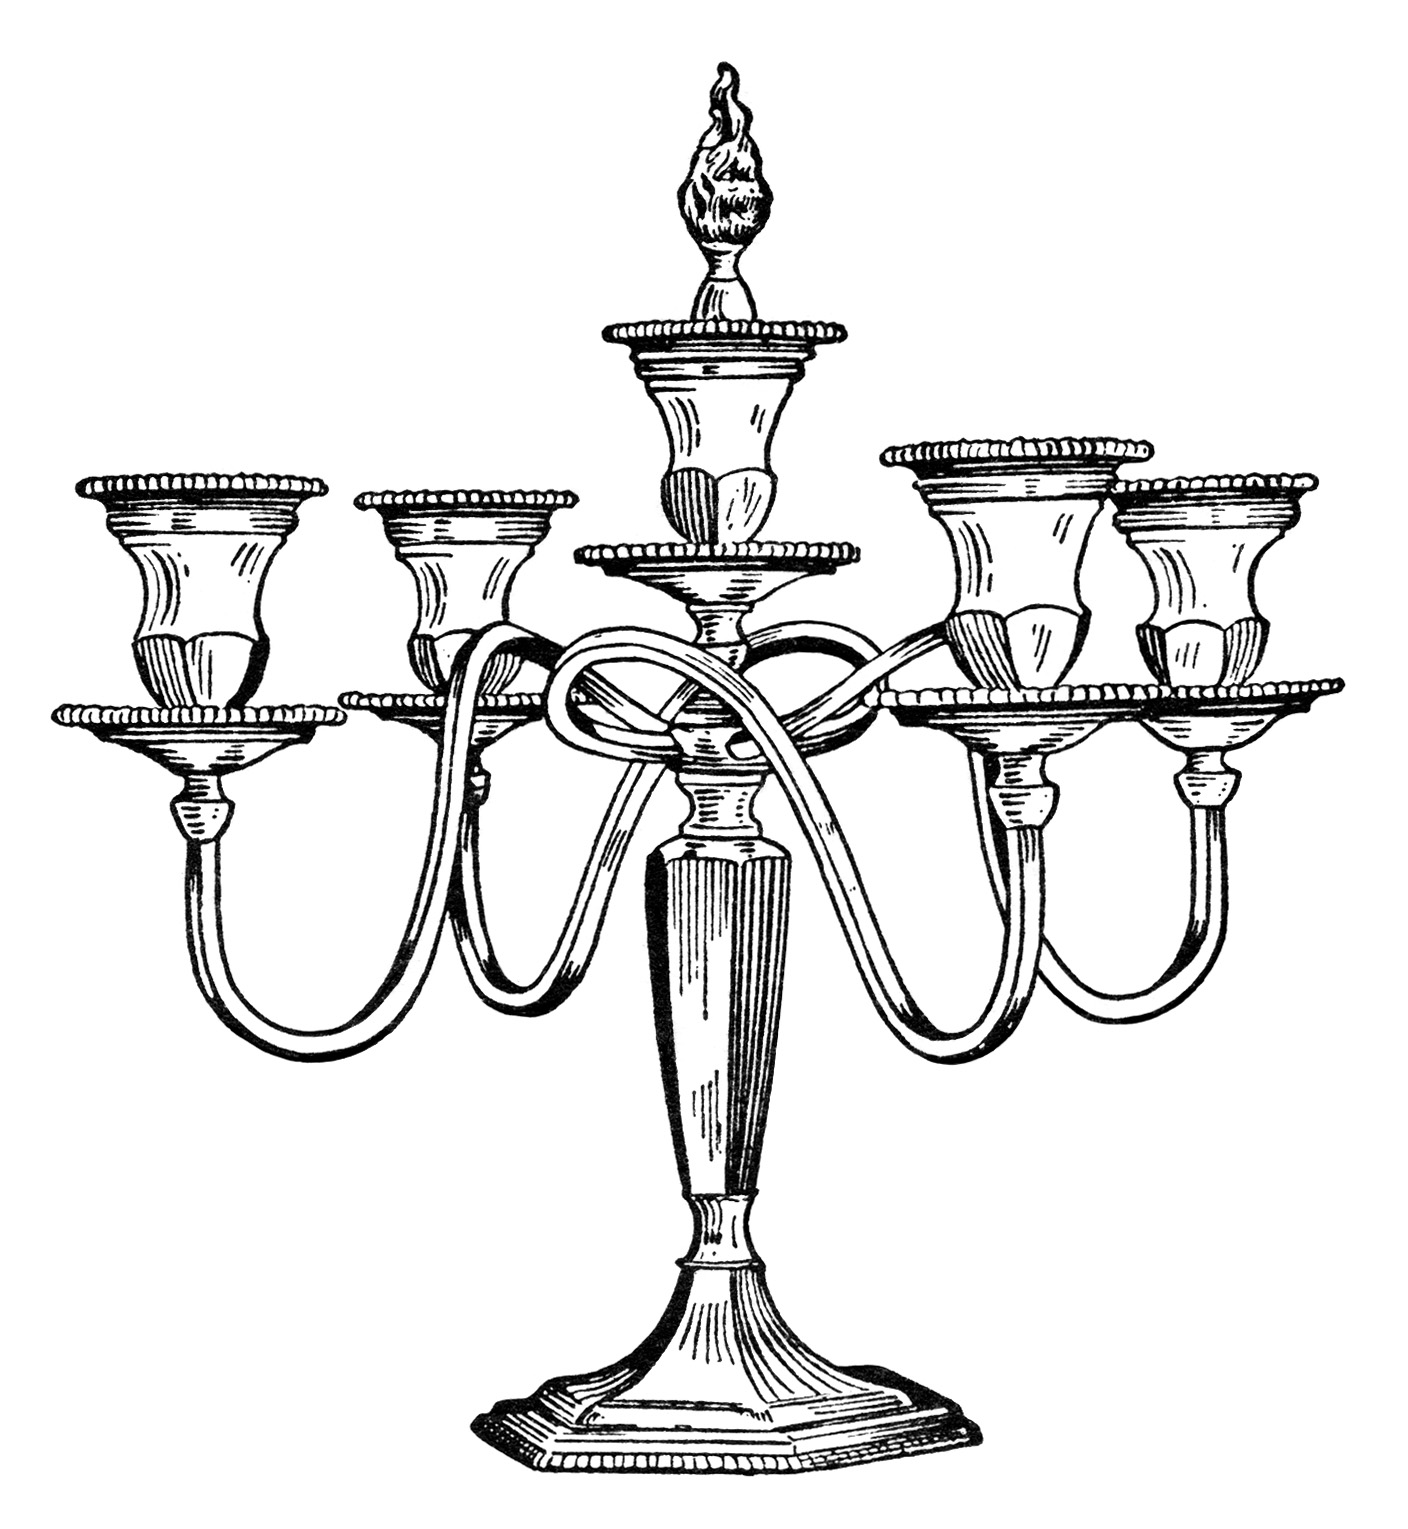 vintage candelabra clip art, black and white clipart, antique candle holder, old style candelabra printable